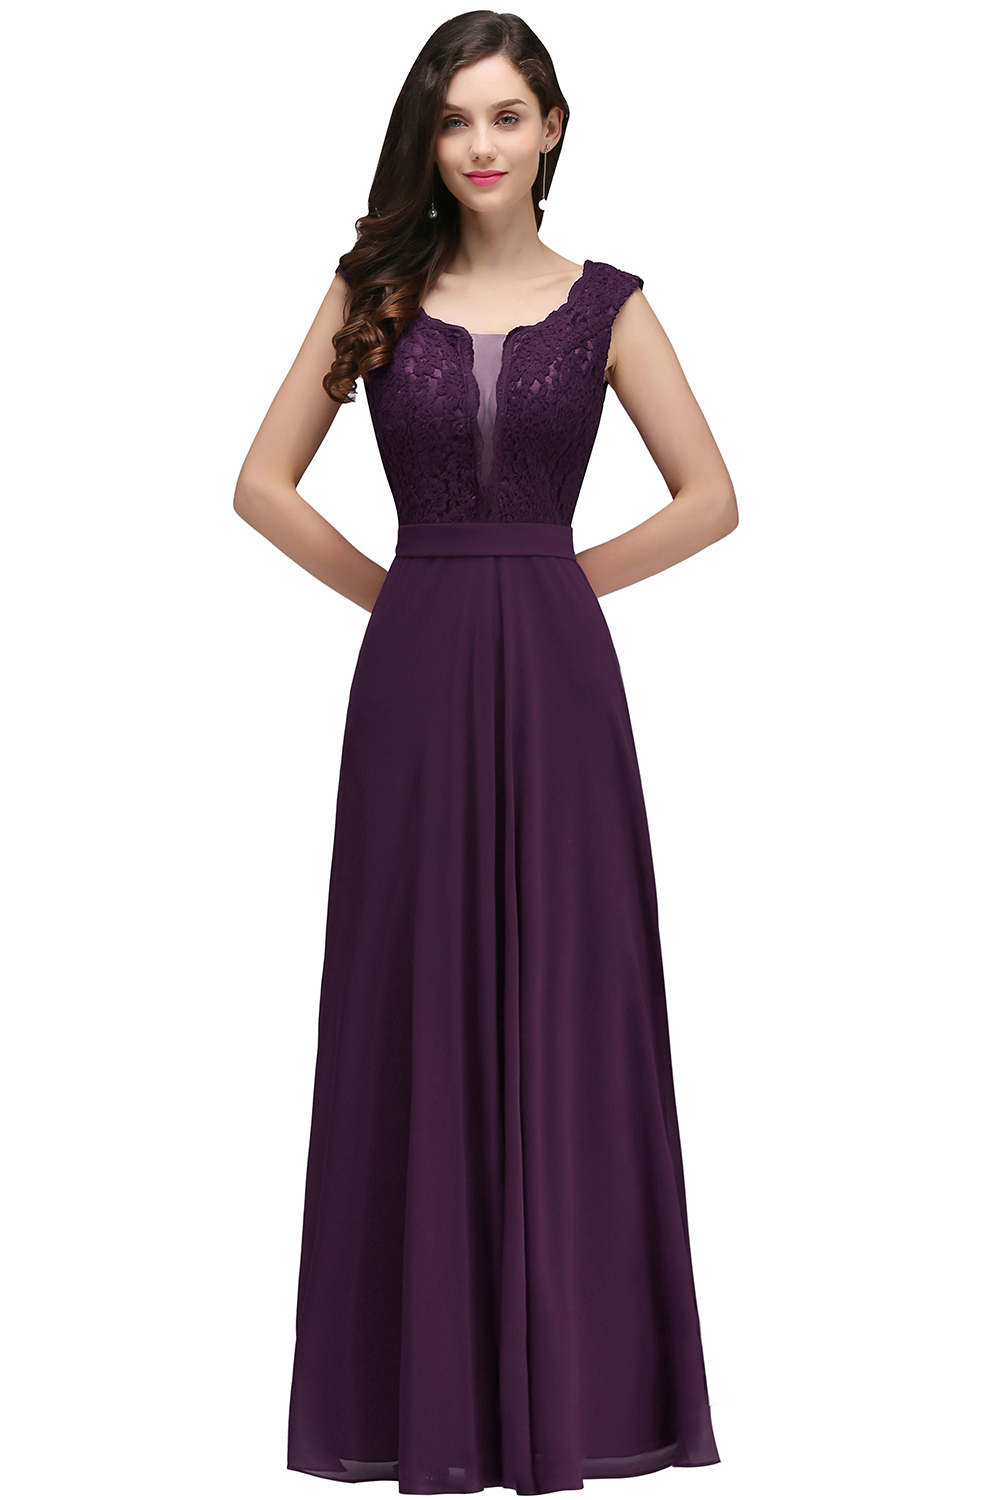 Купить с кэшбэком 2019 Burgundy Chiffon Long Prom Dresses Scoop Neck Sleeveless Prom Gown Vestidos de gala